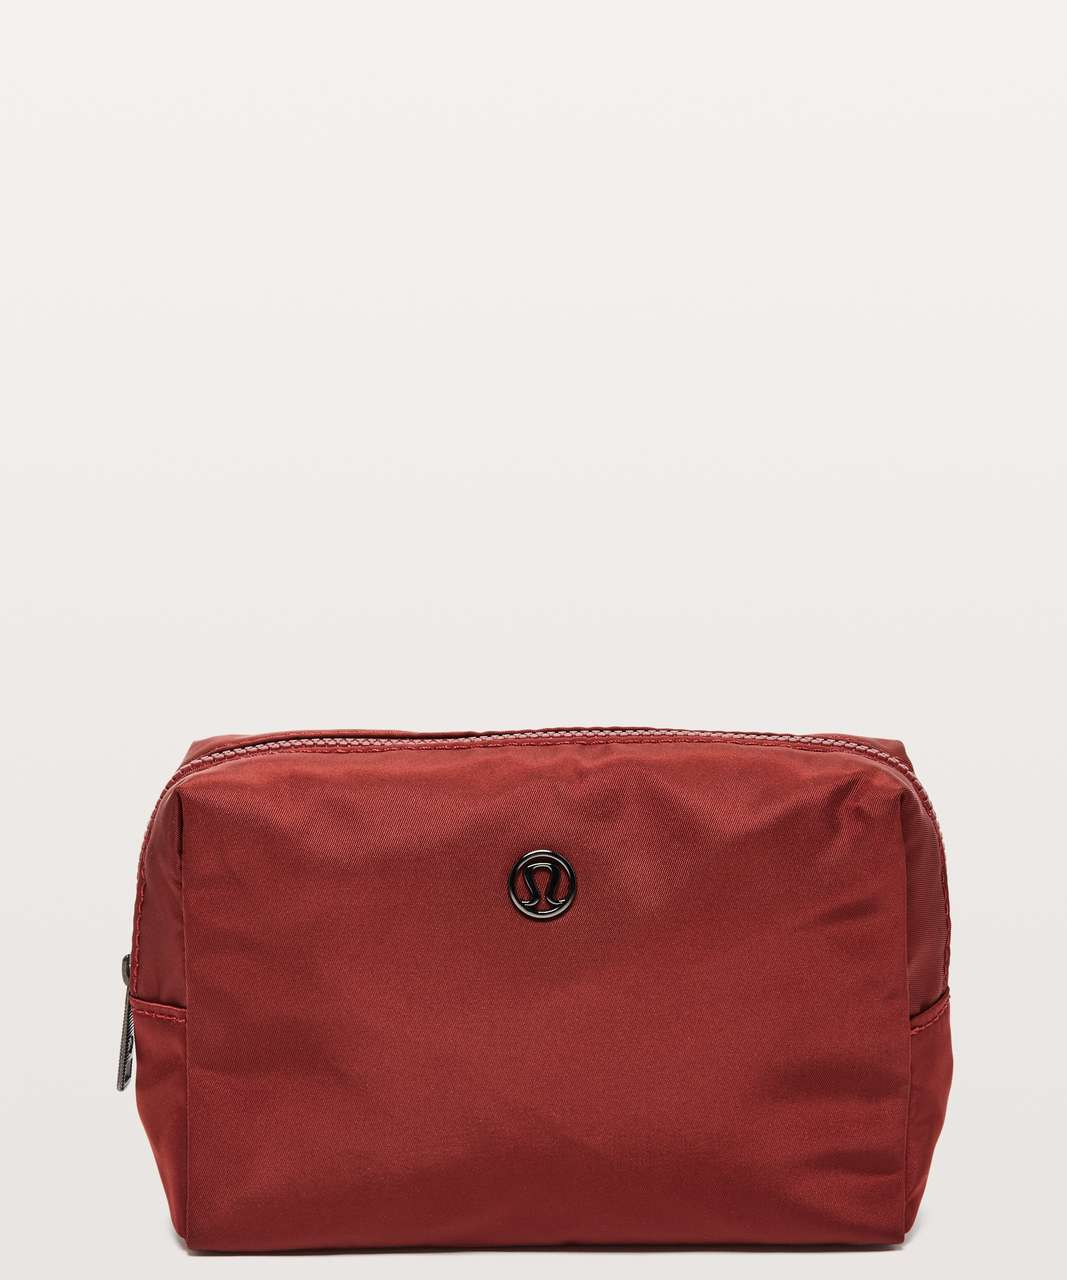 72d8260cfe2 Lululemon All Your Small Things Pouch *Mini 2L - Roman Red - lulu fanatics